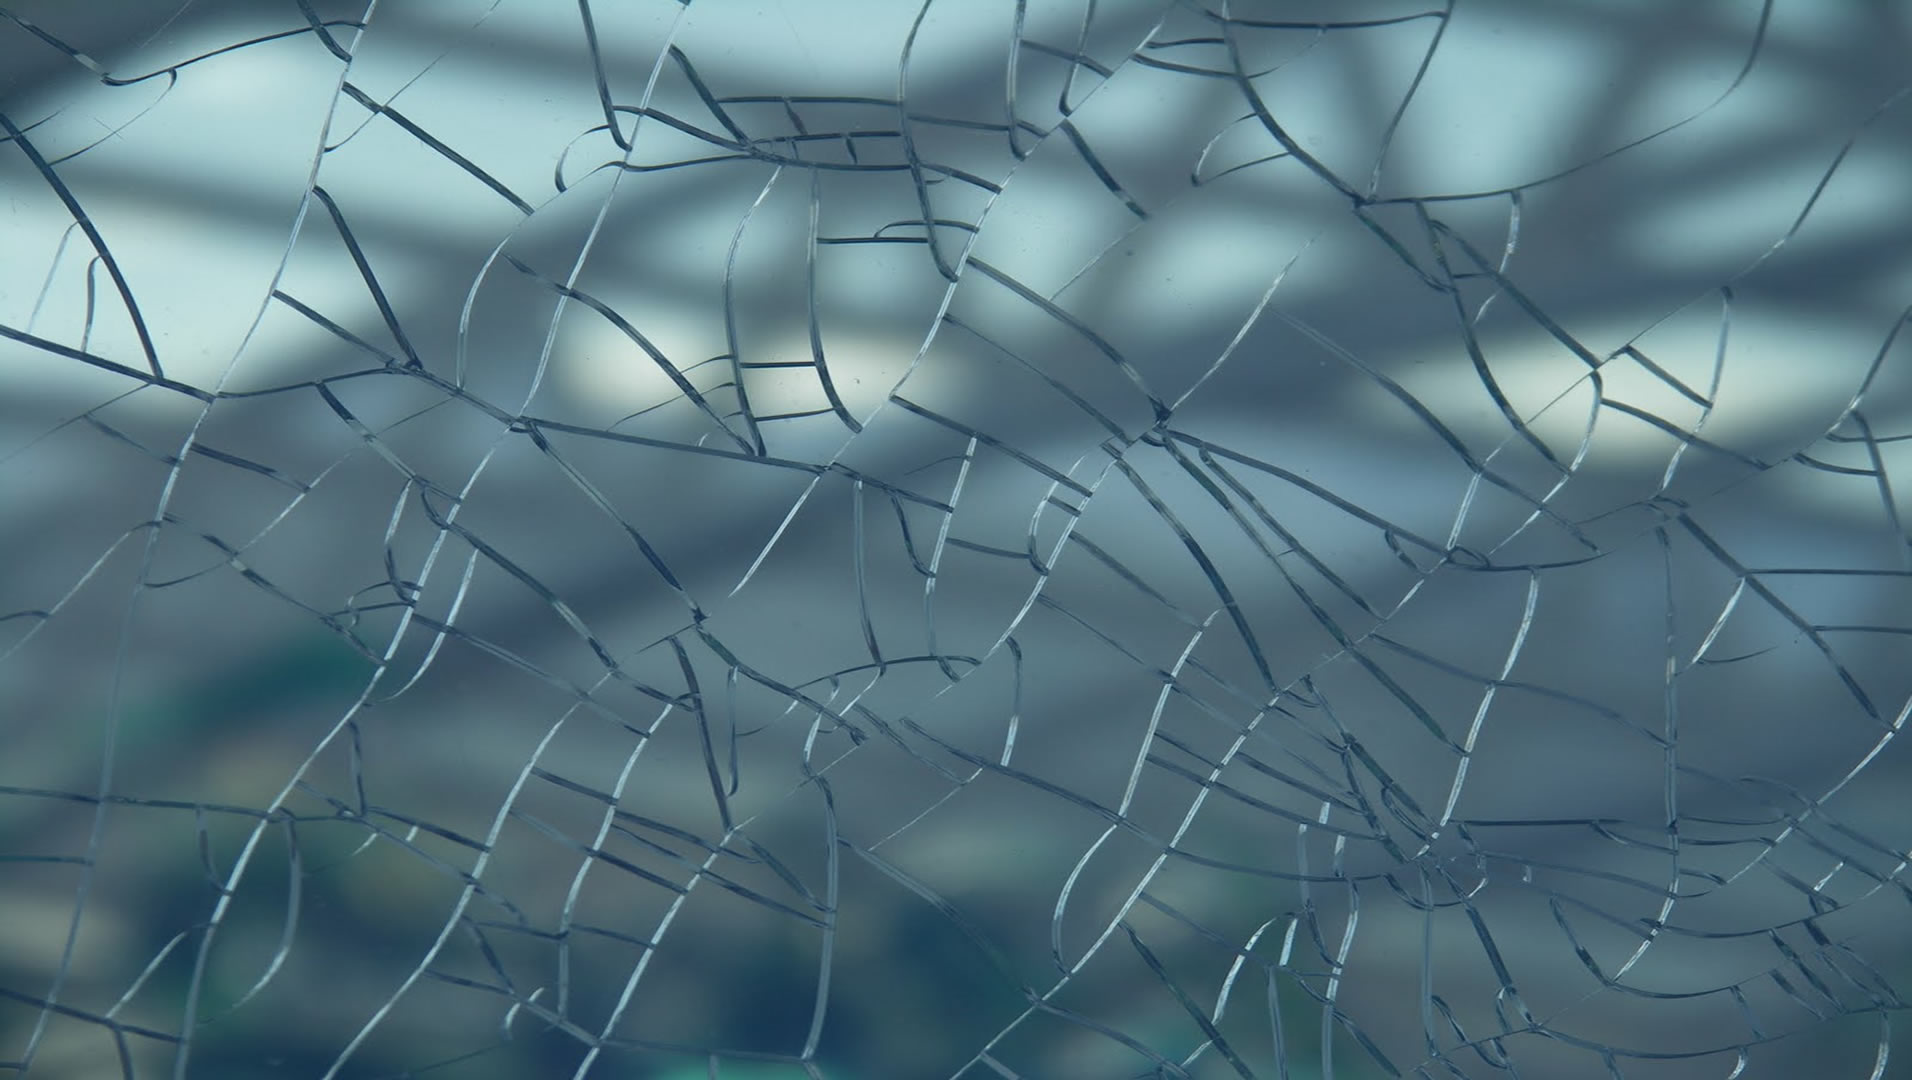 Glass Repair,  Glass Replacement , We will beat or match any price on glass. http://www.accu1glass.com